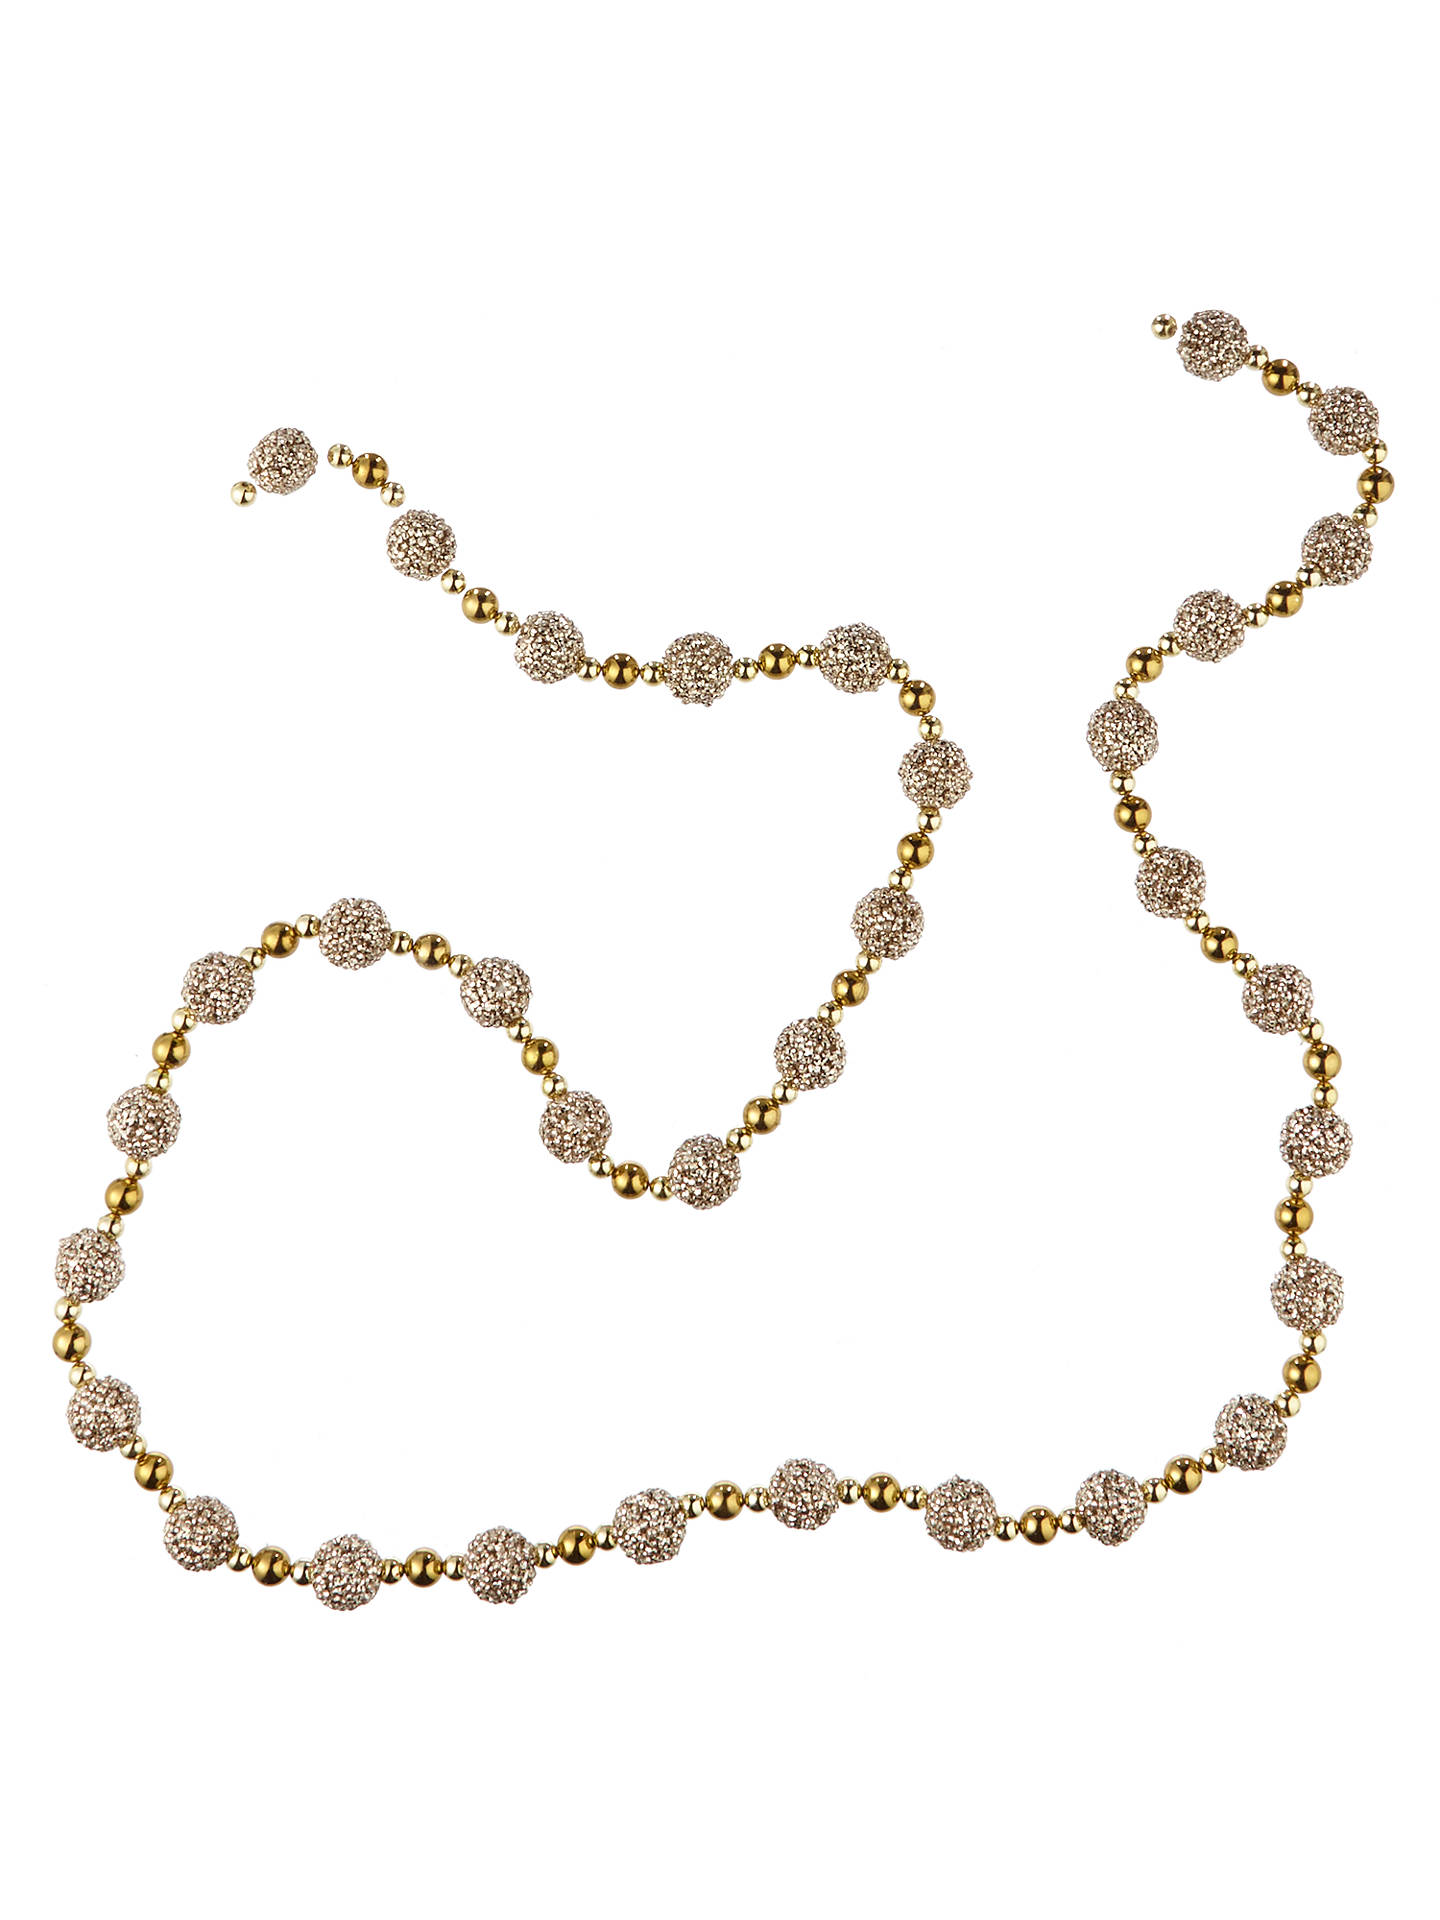 BuyJohn Lewis Tales of the Maharaja Glitter Ball Bead Garland, L180cm, Gold Online at johnlewis.com